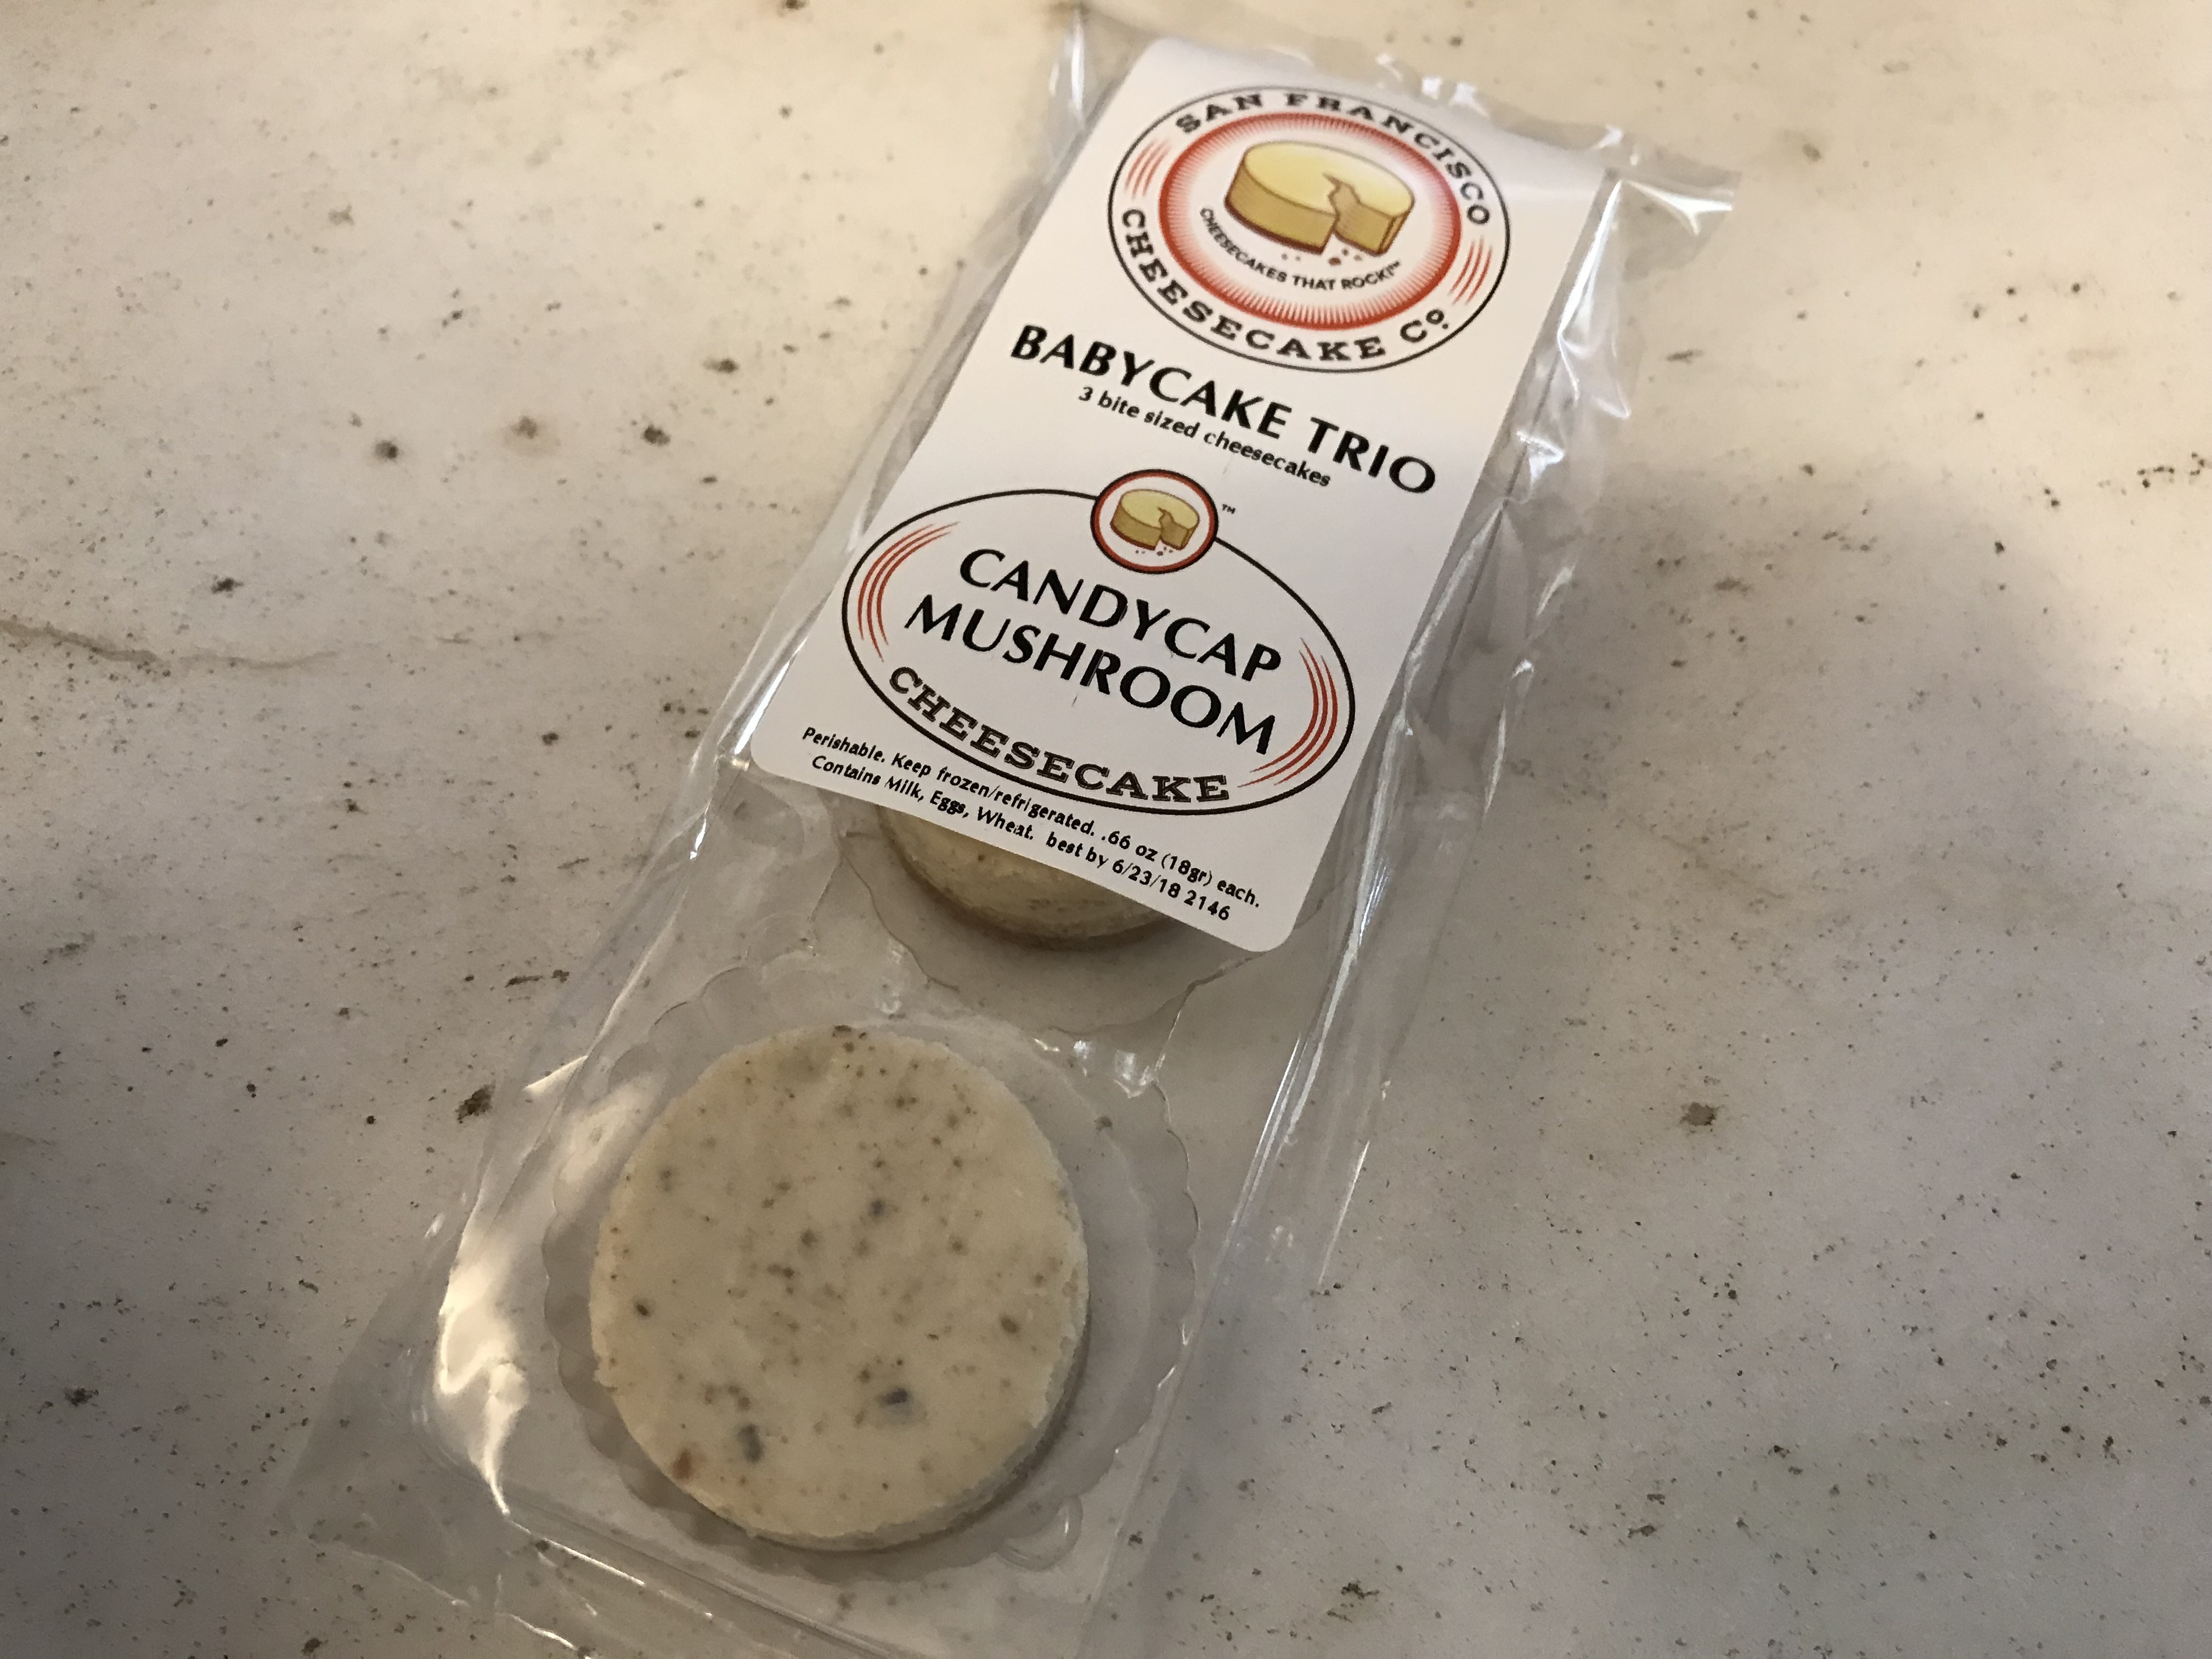 Shake, Rattle and Roll Over Kooky Cheesecake Flavors – CheeseQuakes! in San Francisco, California